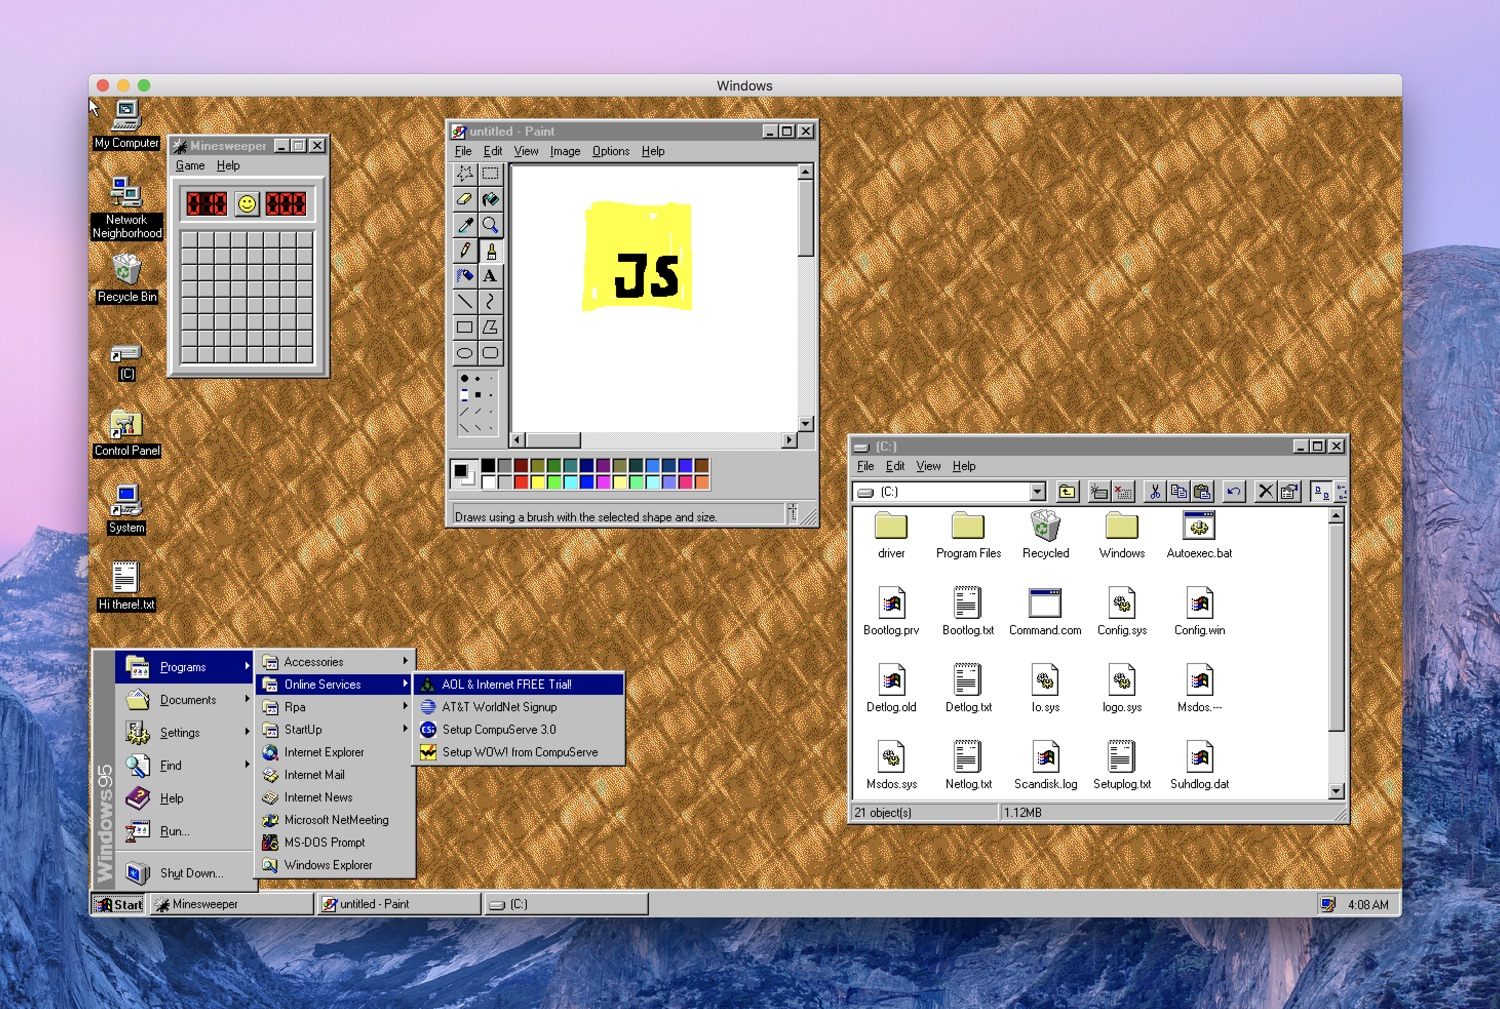 Windows 95 running in Electron